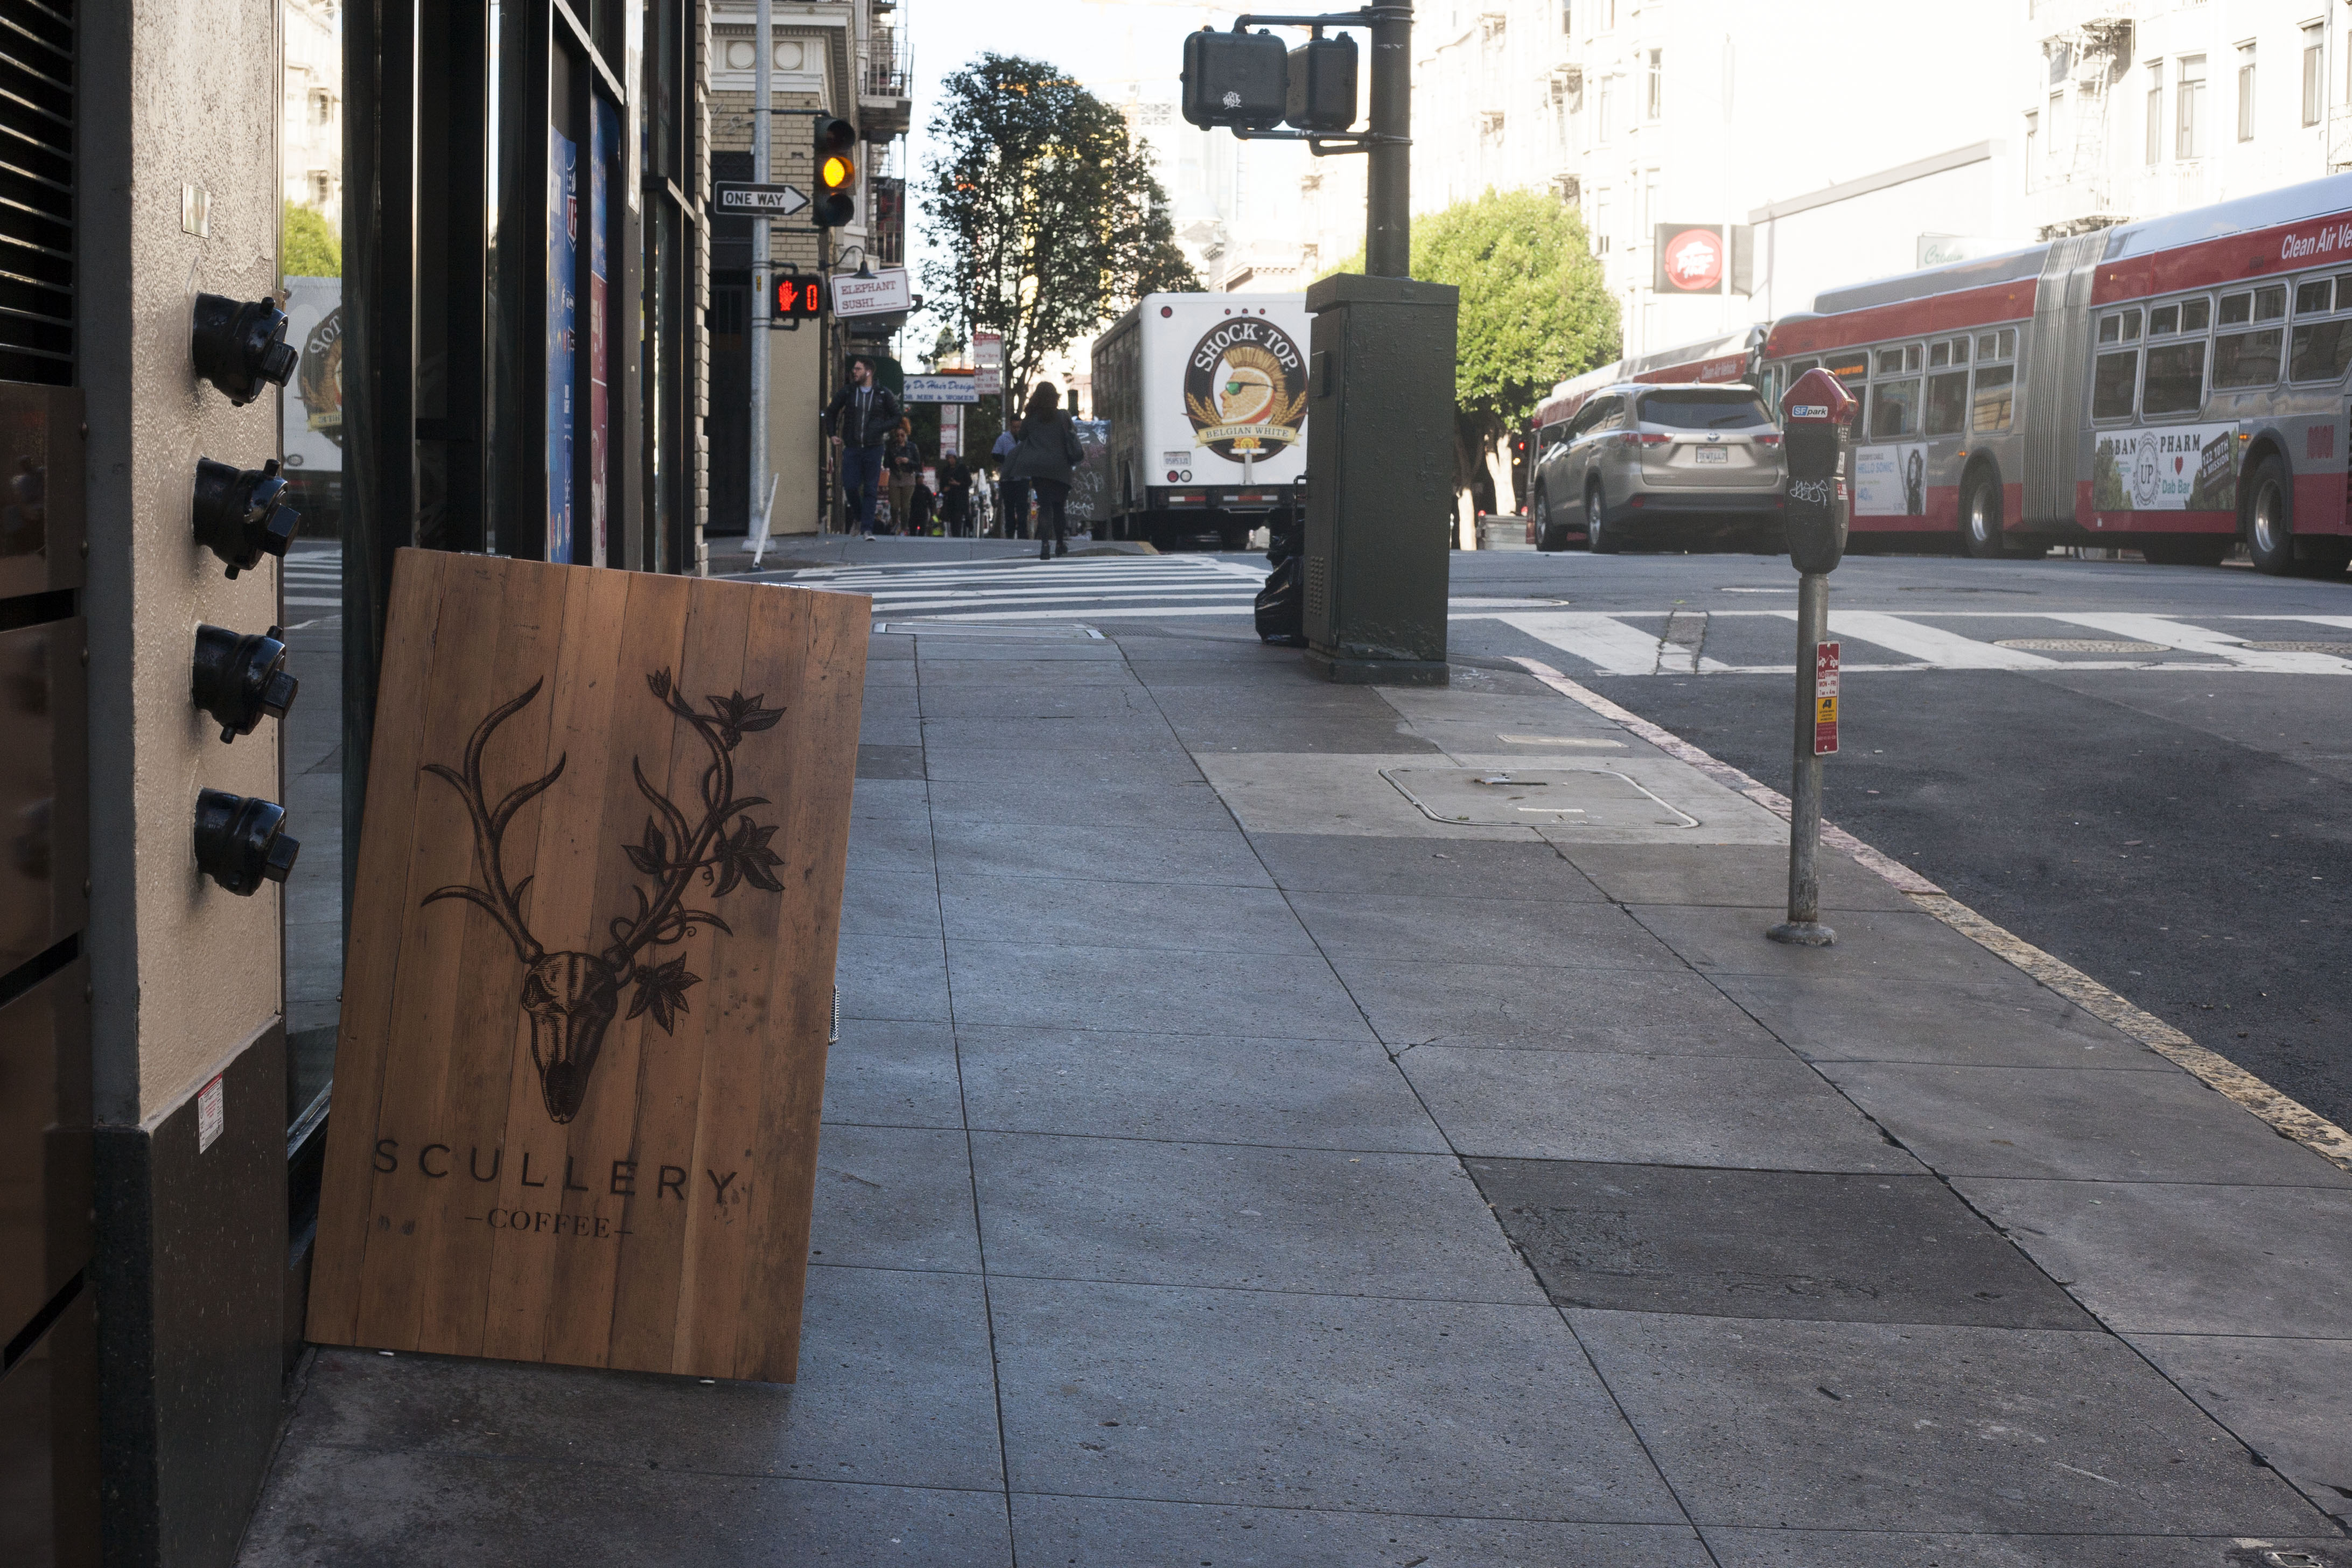 San Francisco: Scullery Brings Old World Charm To The Tenderloin photo